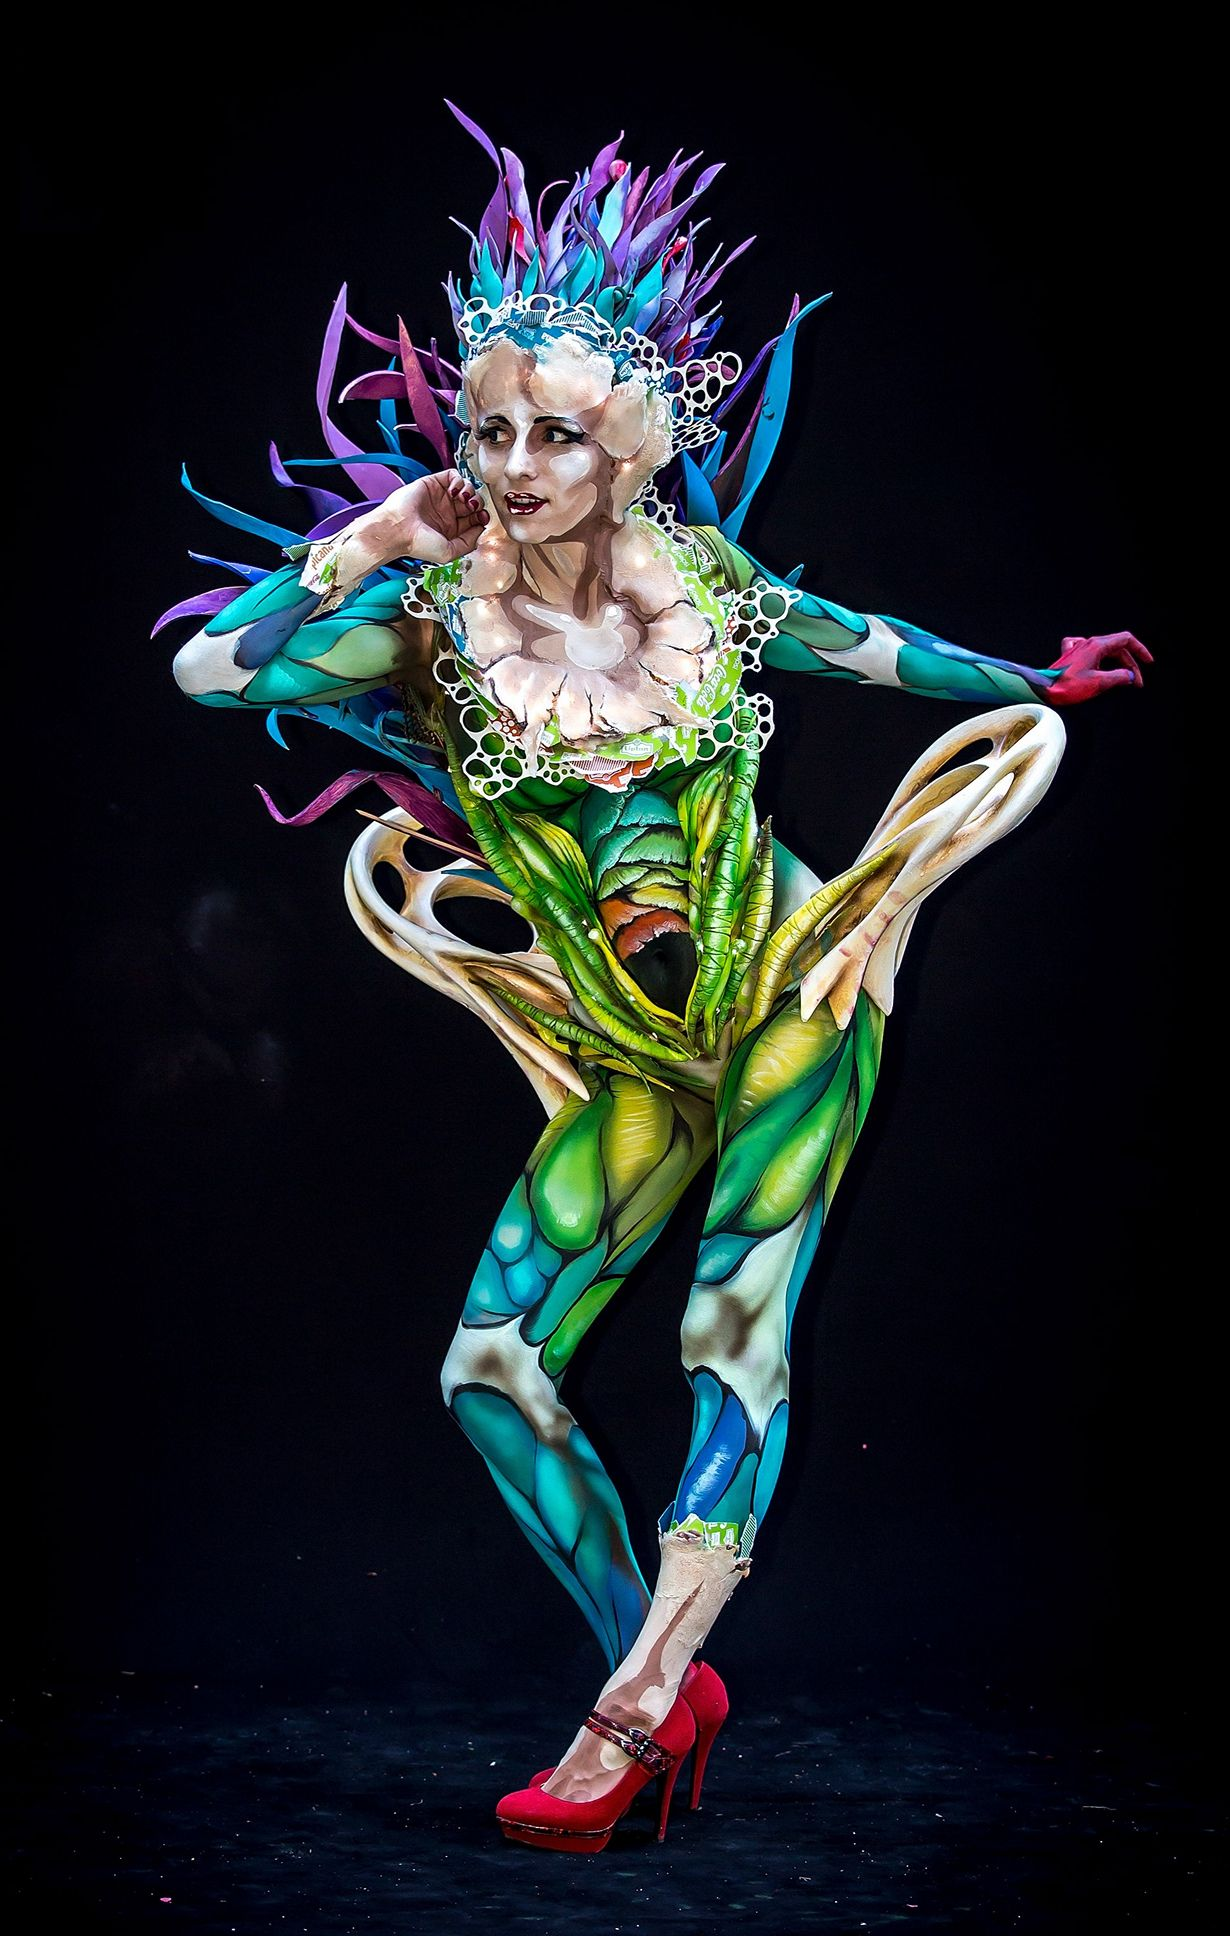 фестиваль боди-арта, World bodypainting festival 2014